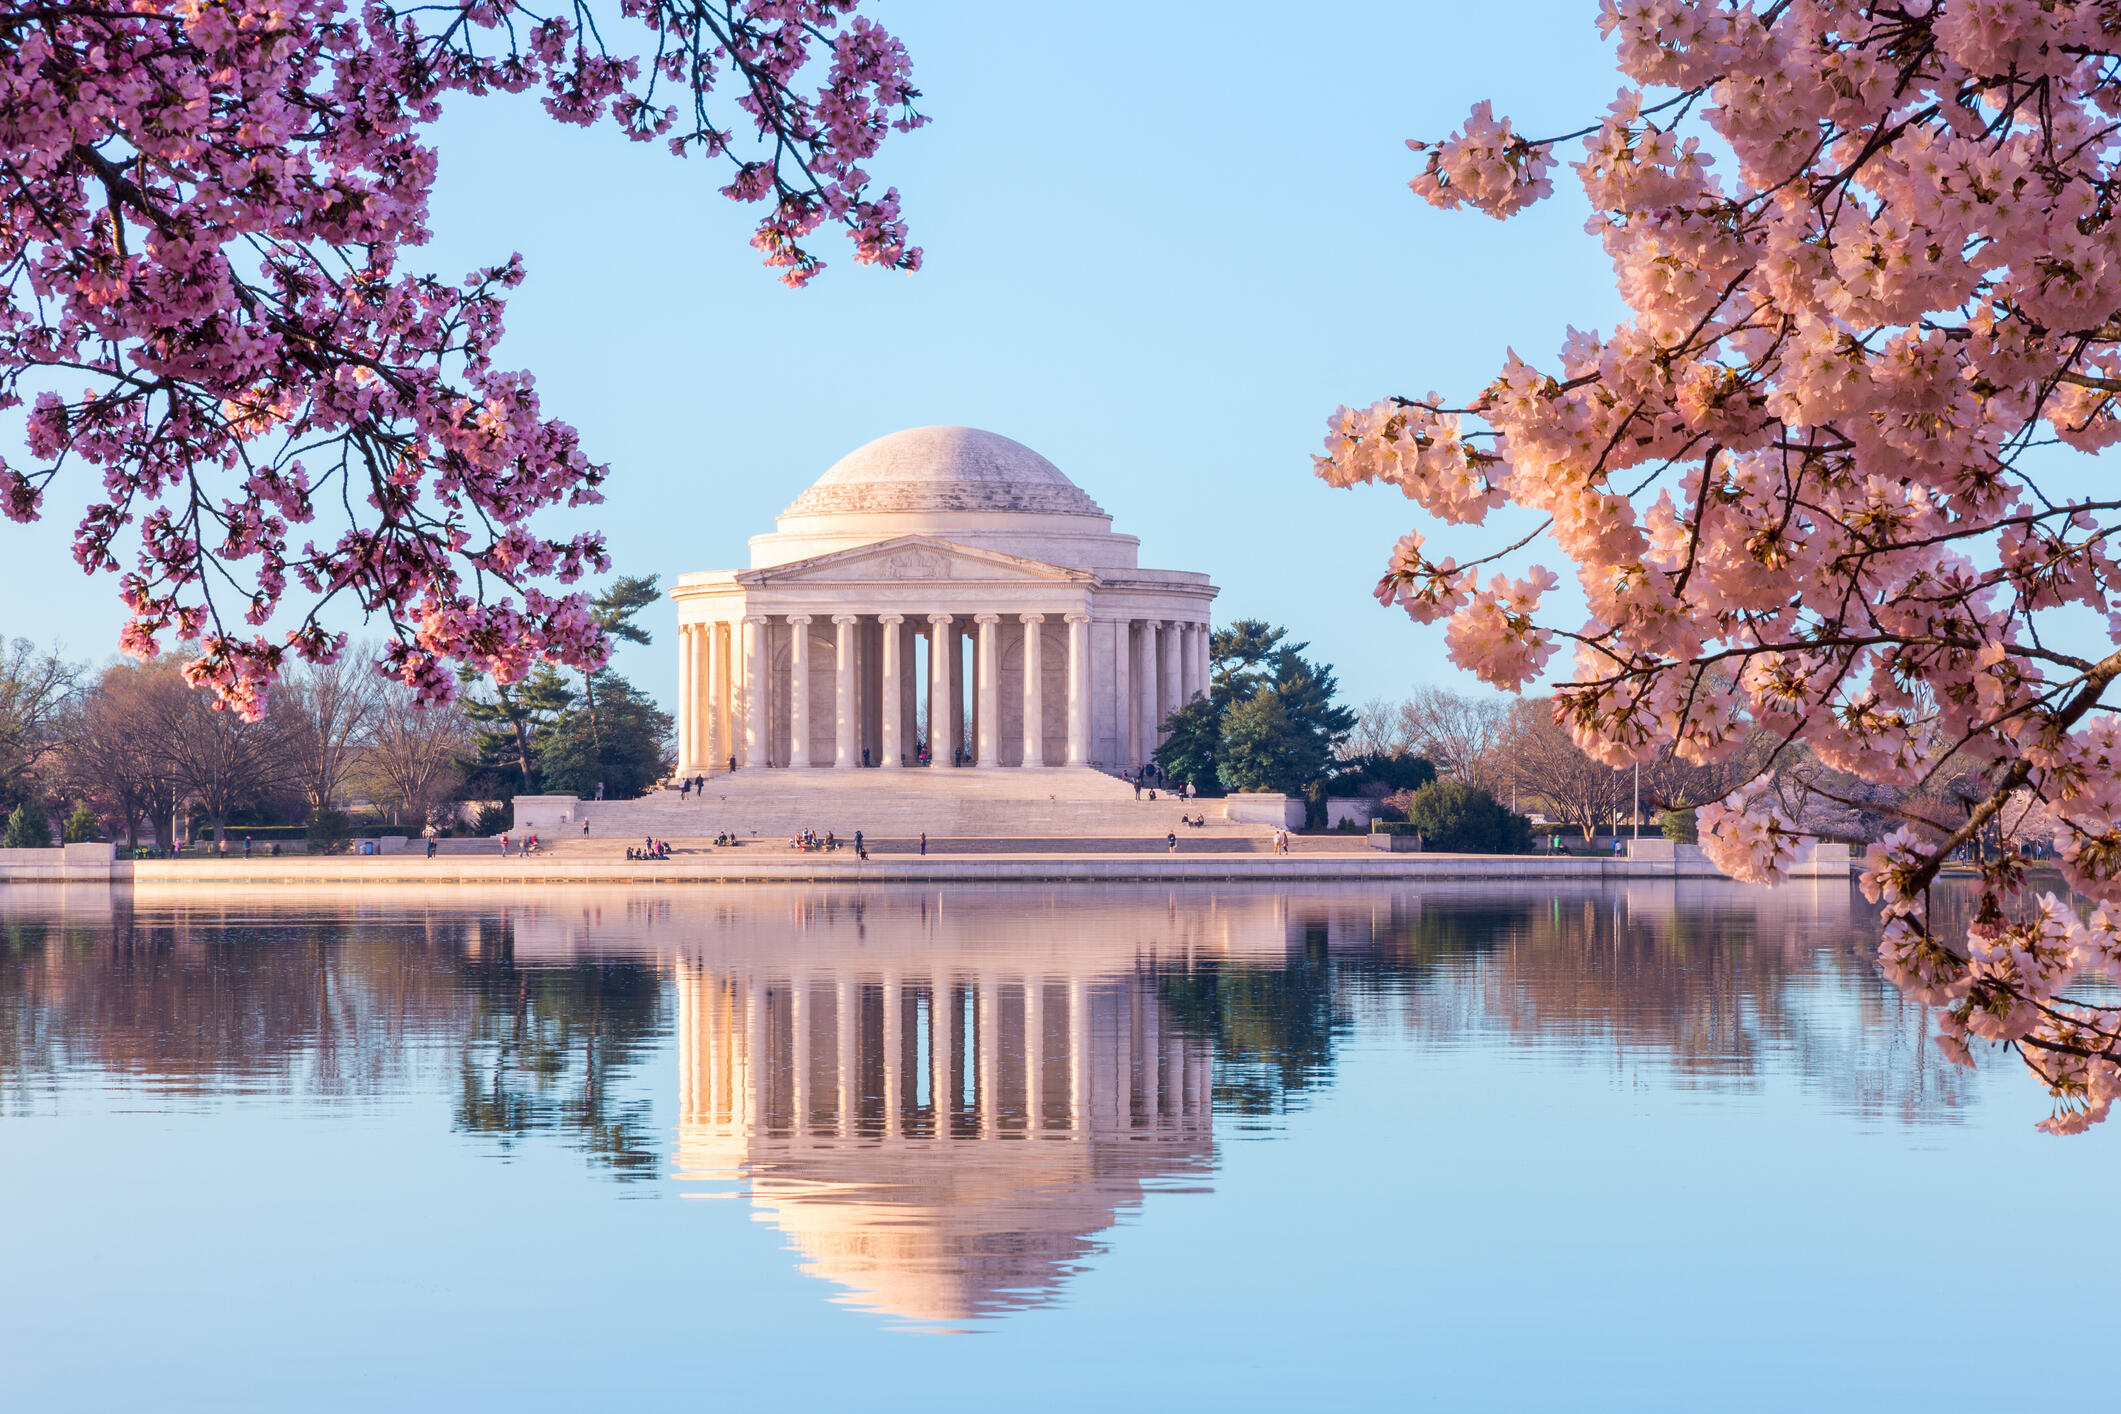 Best Places In DC To See The Cherry Blossoms!